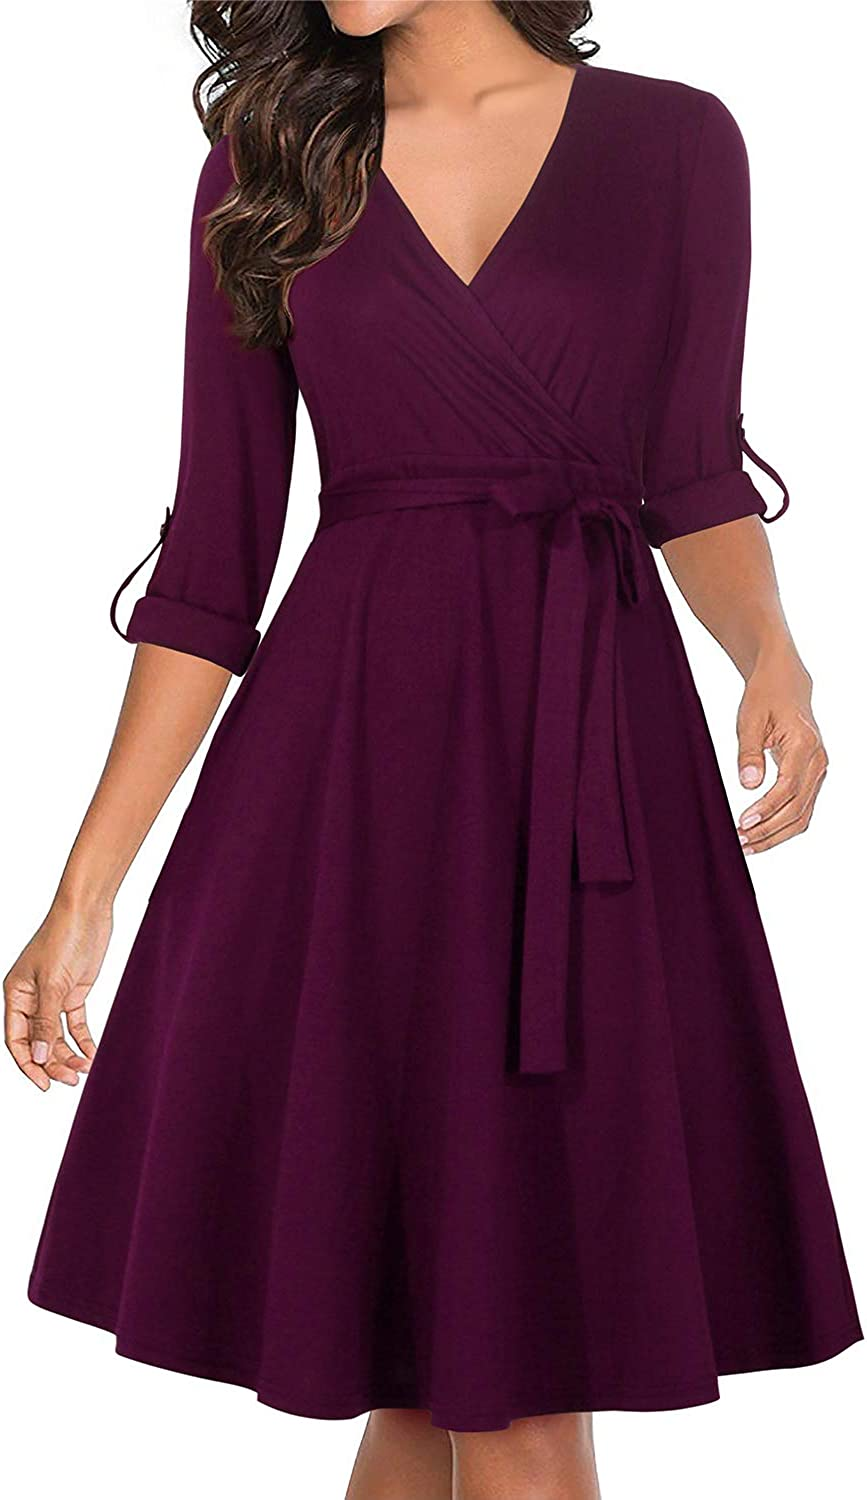 Manydress Women's V Neckline Ranking TOP18 Fit and shipfree Swing Co Midi Vintage Flare